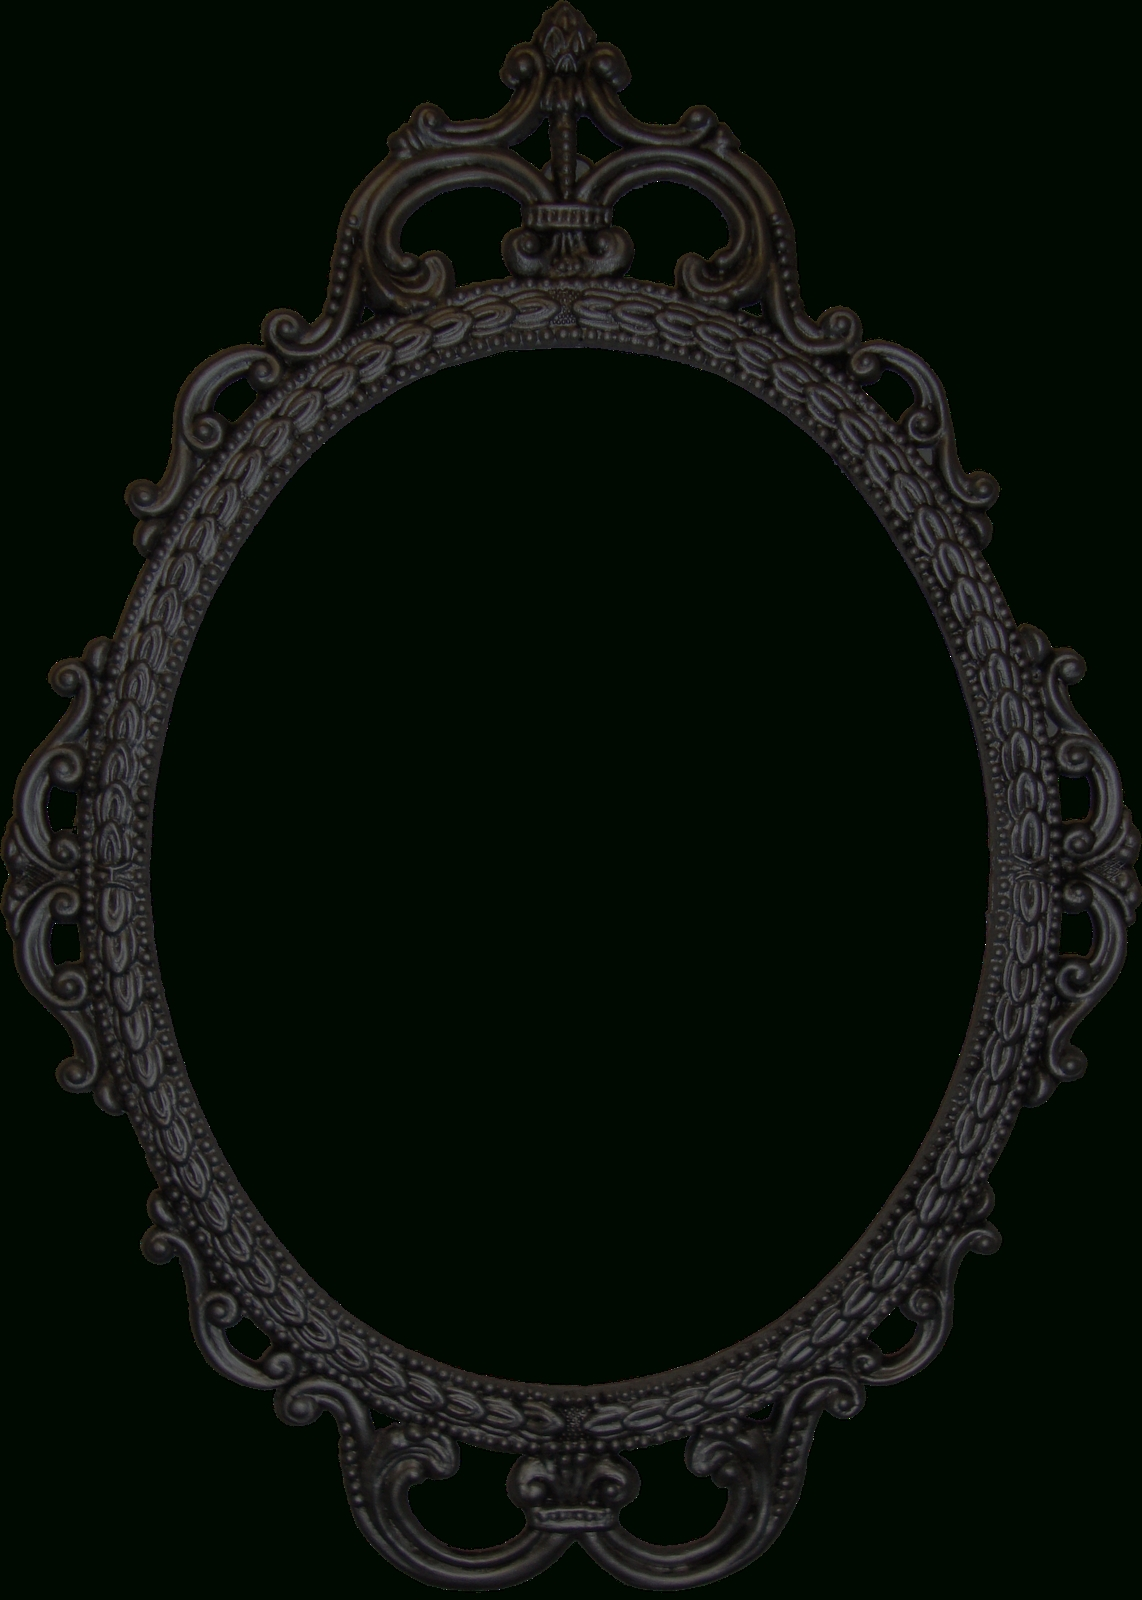 Vintage Clipart Mirror Frame - Pencil And In Color Vintage Clipart pertaining to Antique Black Mirrors (Image 14 of 15)